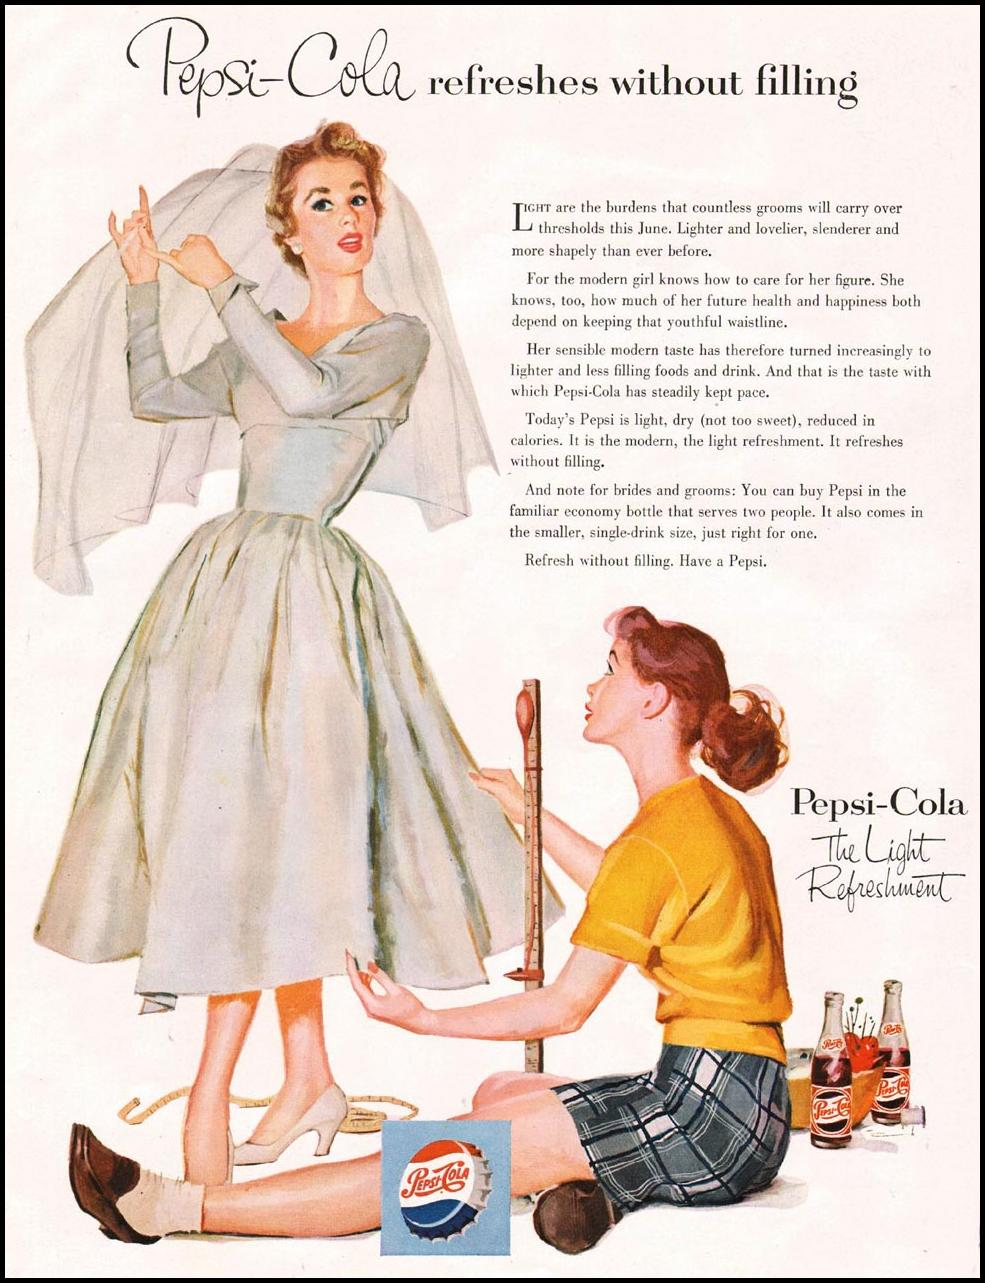 PEPSI-COLA LADIES' HOME JOURNAL 06/01/1954 p. 22